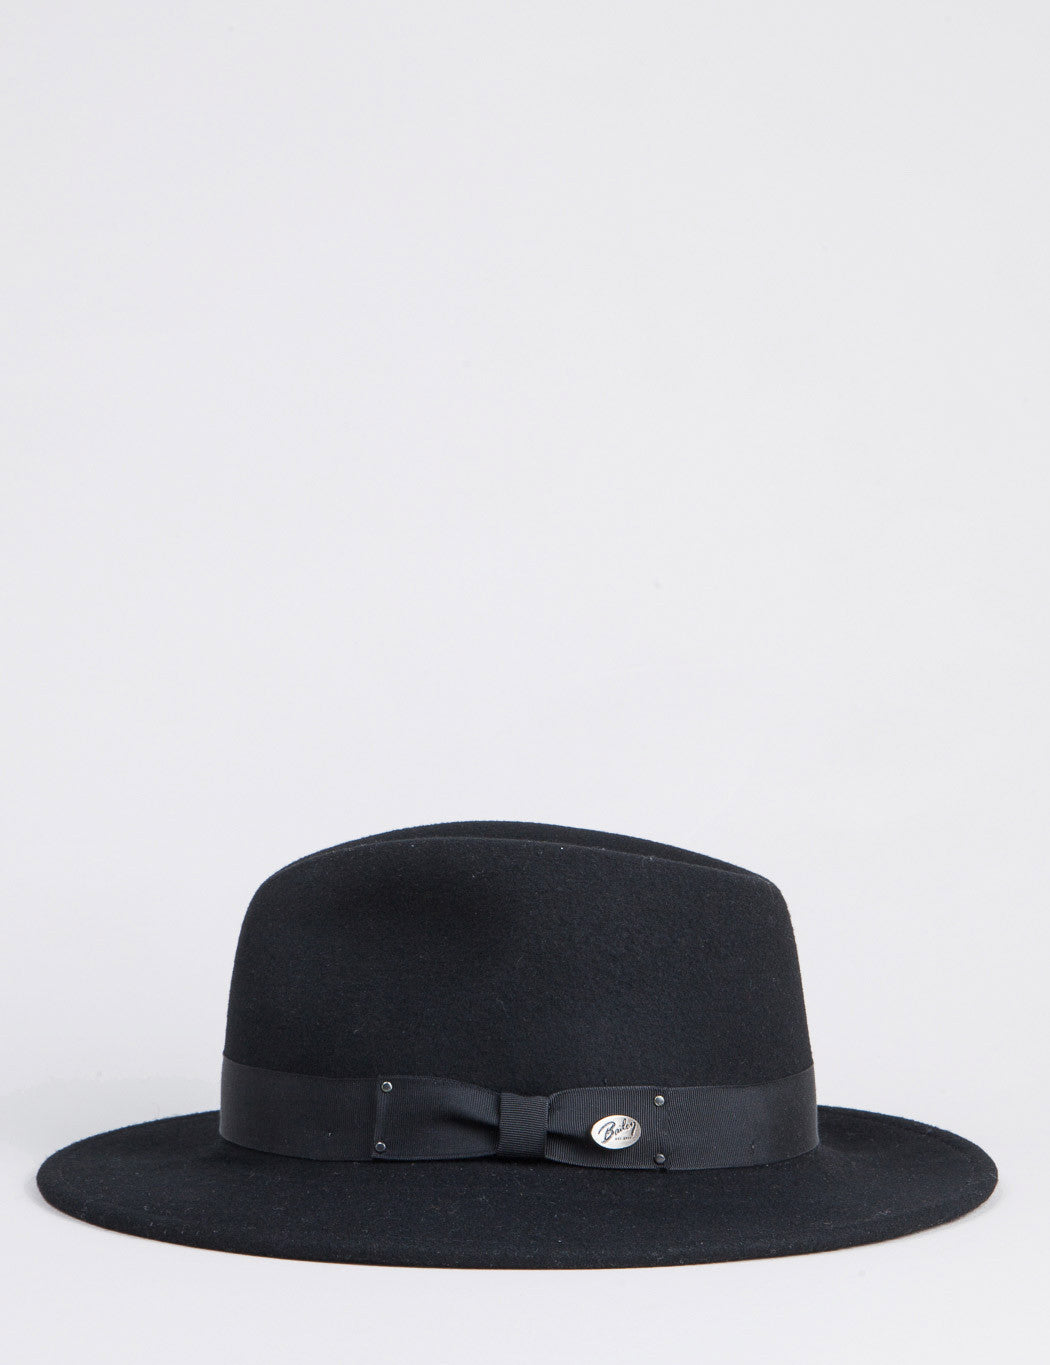 Bailey Curtis Widebrim Fedora Hat - Black – URBAN EXCESS 00cf3cd76131